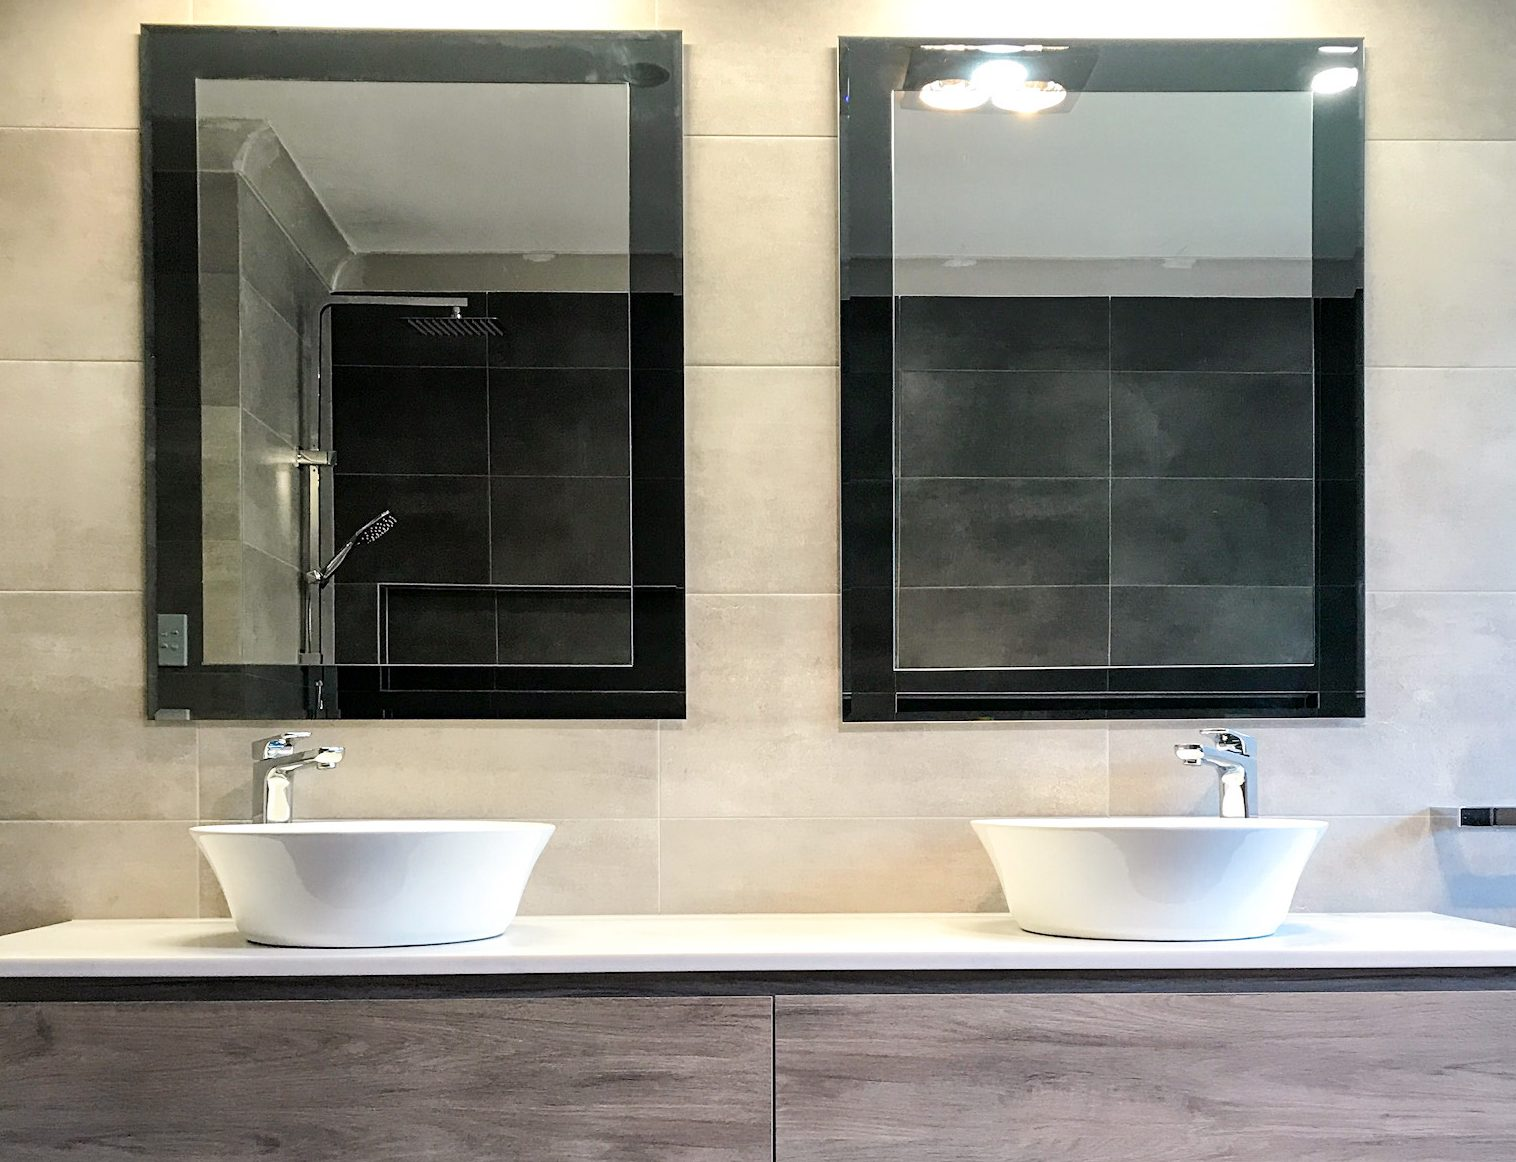 Double mirrors with double bowl vanity - bathroom renovation by Master Bathrooms & Kitchens.